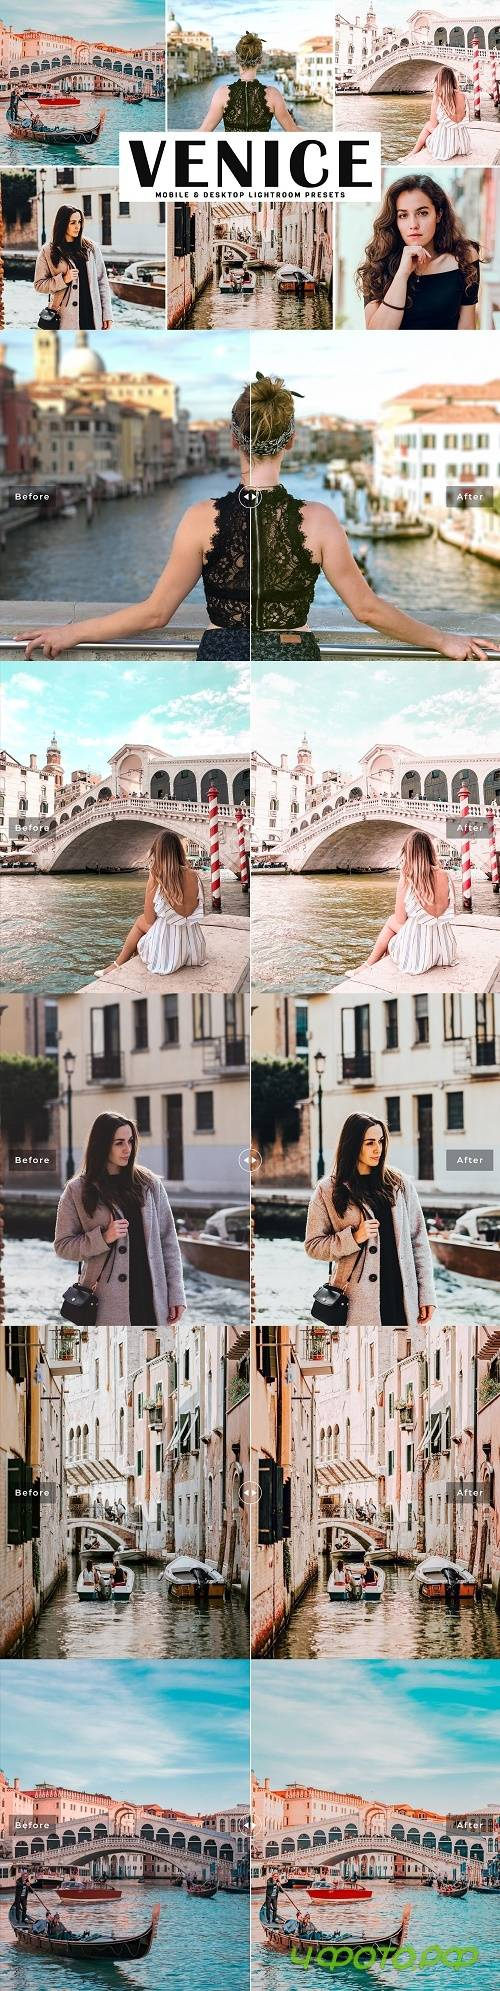 Venice Lightroom Preset Pack - 4087975 - Mobile & Desktop Lightroom Presets